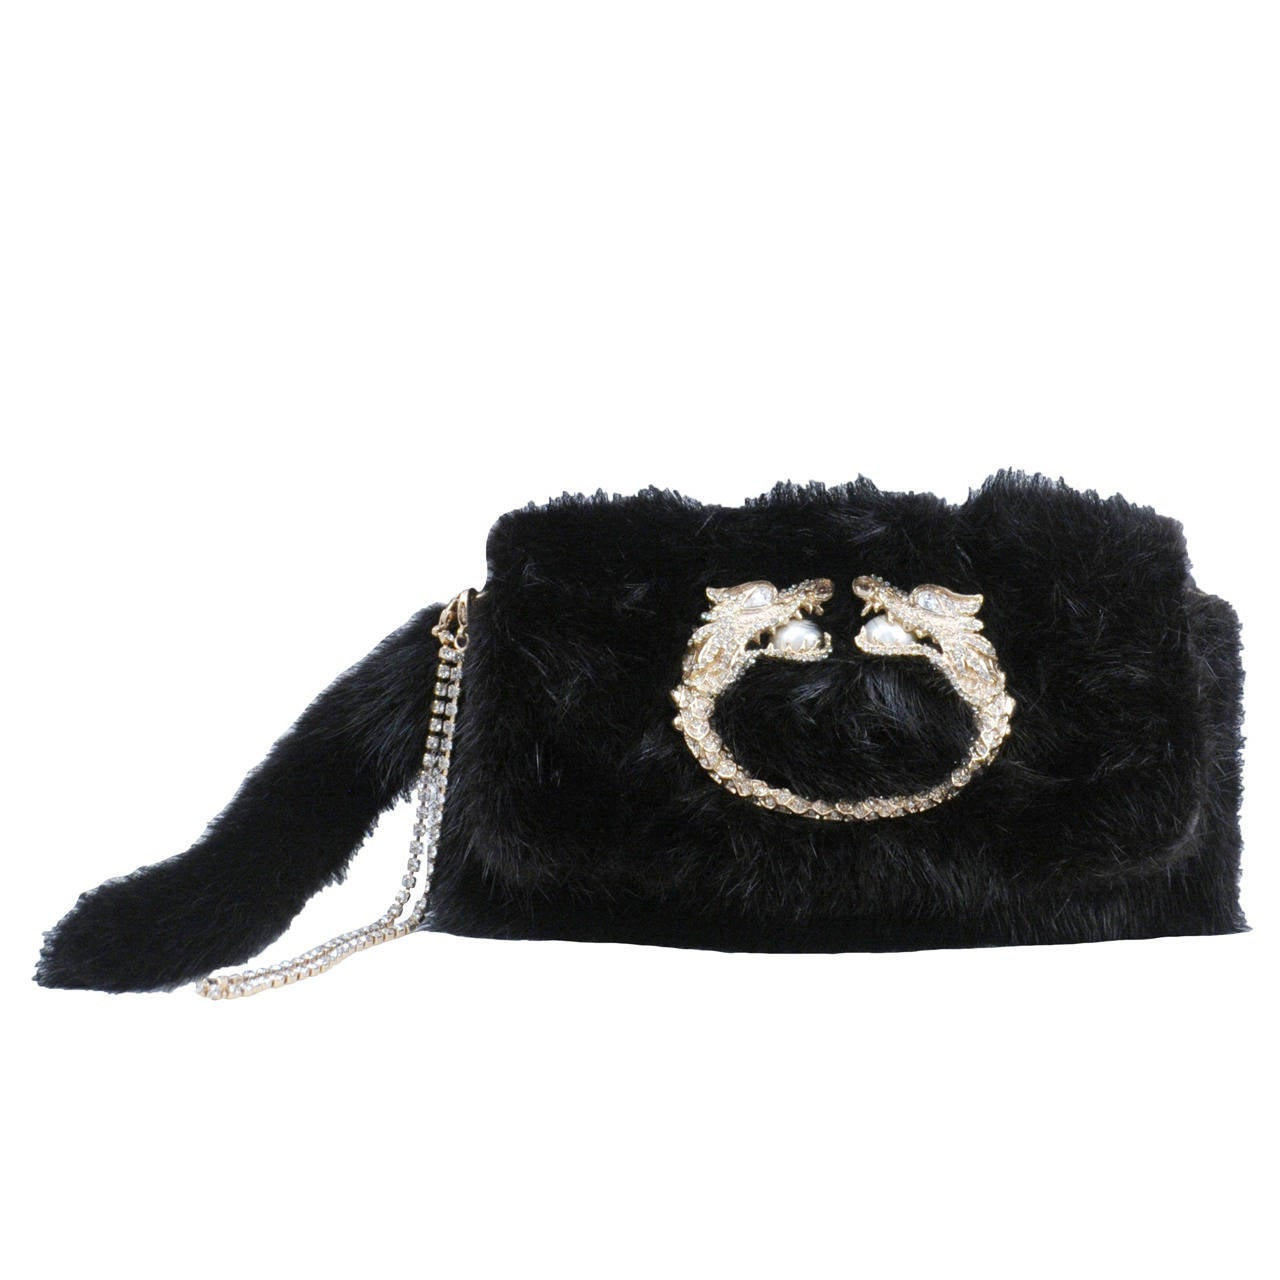 Tom Ford Mink Clutch with Encrusted Dragon Emblem 1